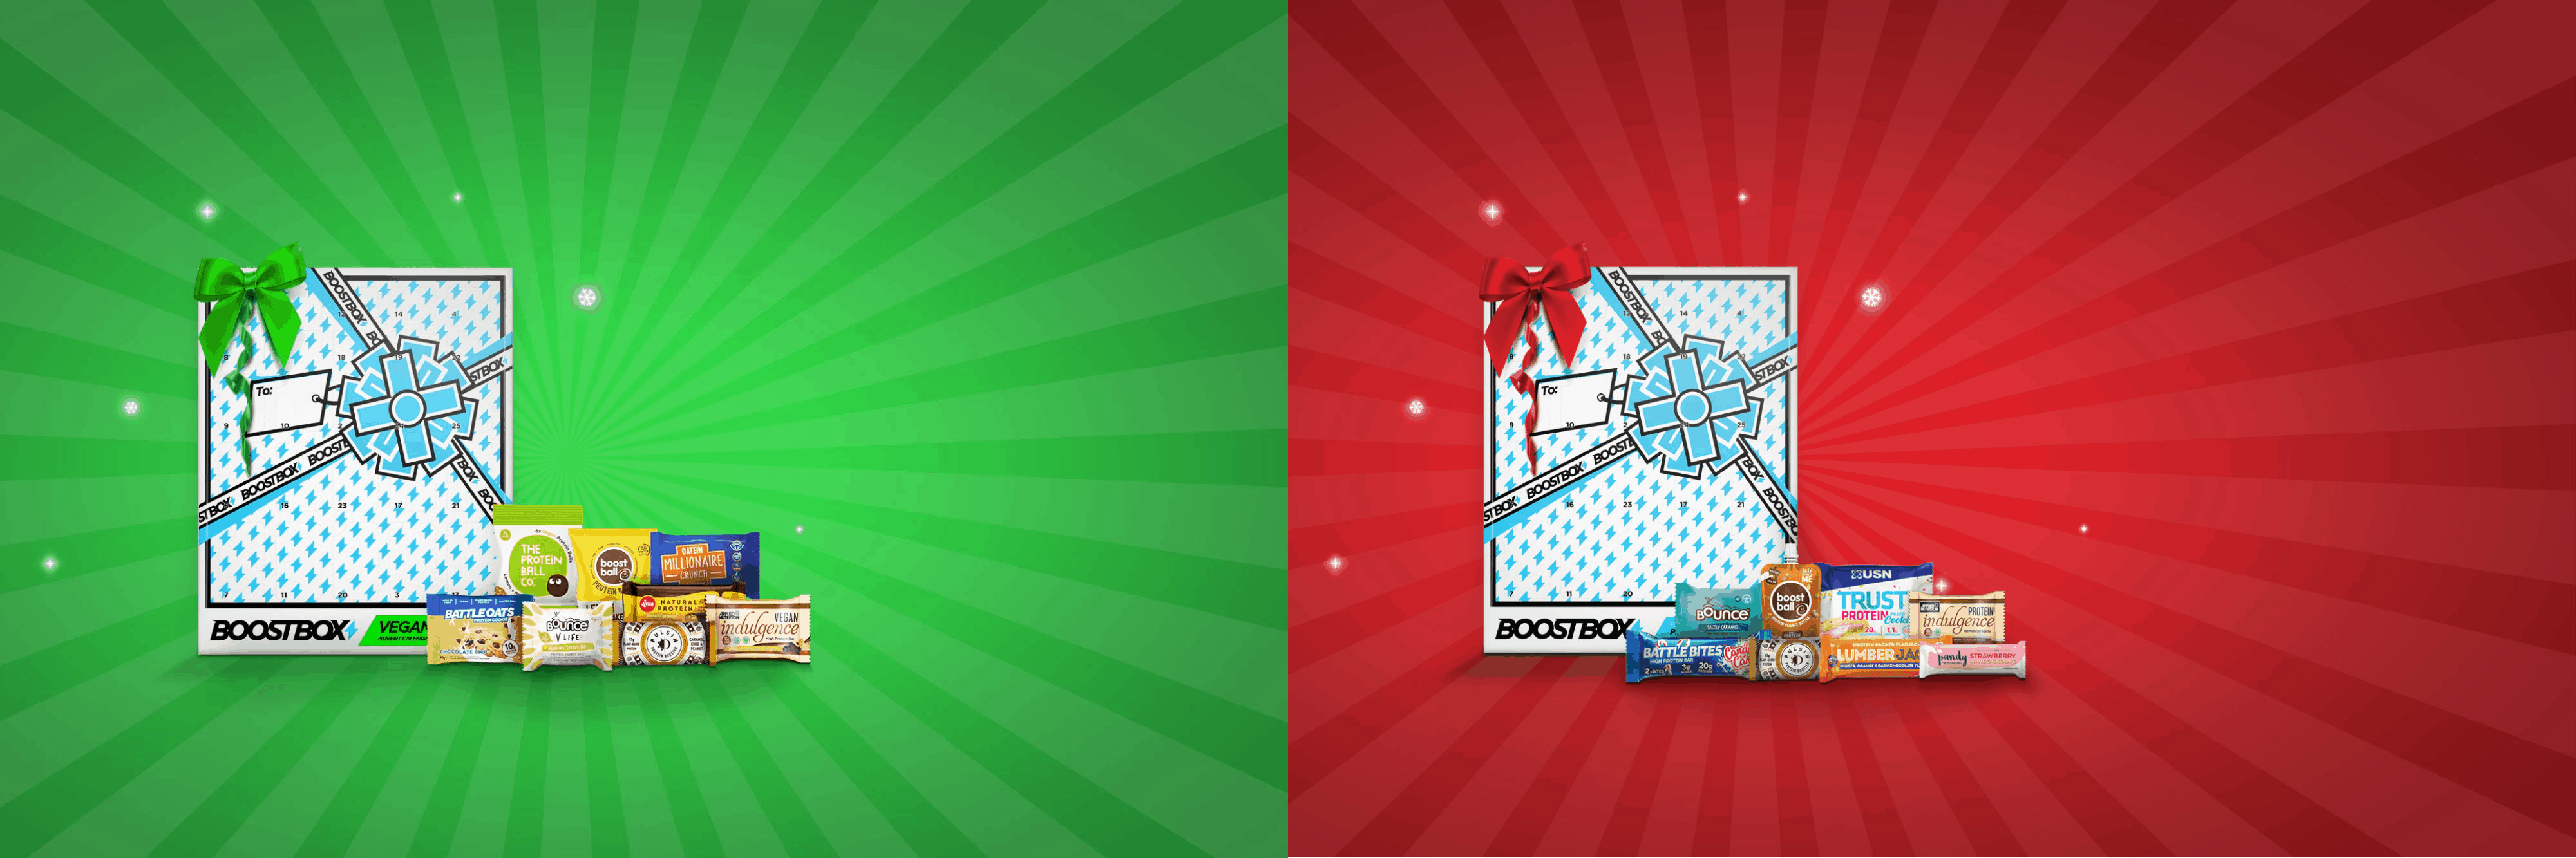 2019 Boostbox Protein Advent Calendars Available Now + Spoilers! {UK}